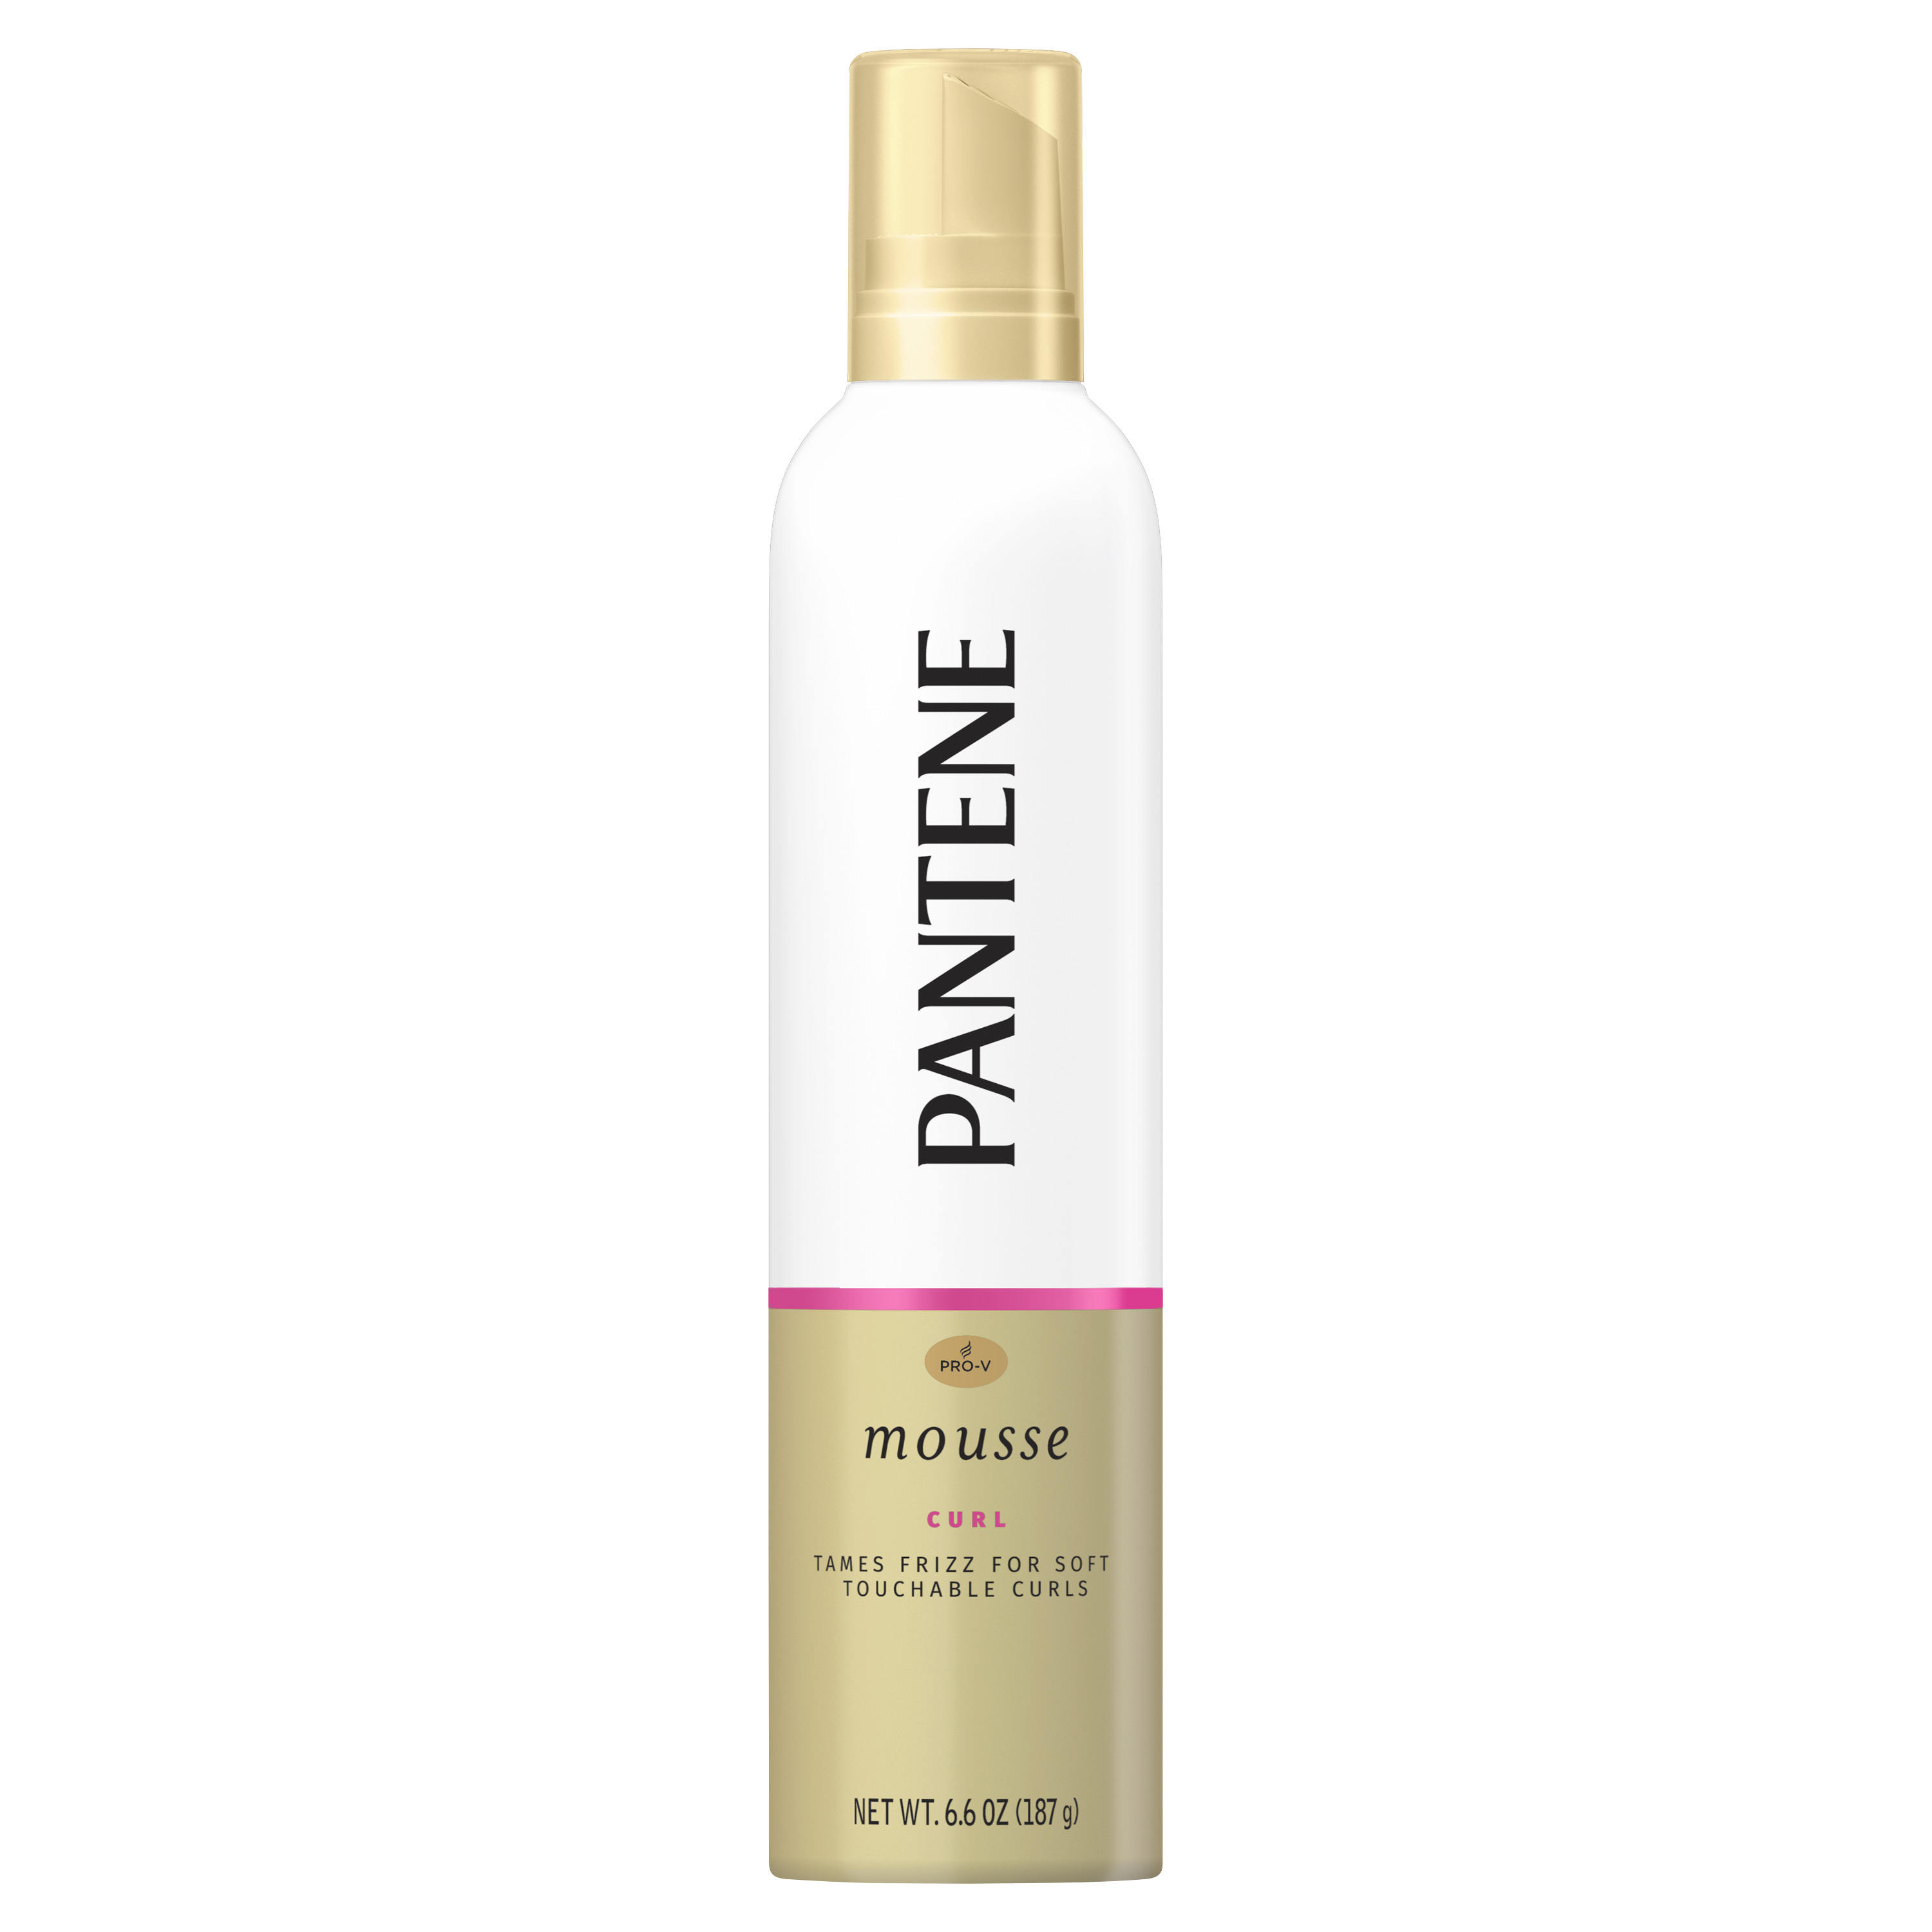 Pantene Pro-V Curl Mousse Tame Frizz for Soft and Touchable Curls - 187g